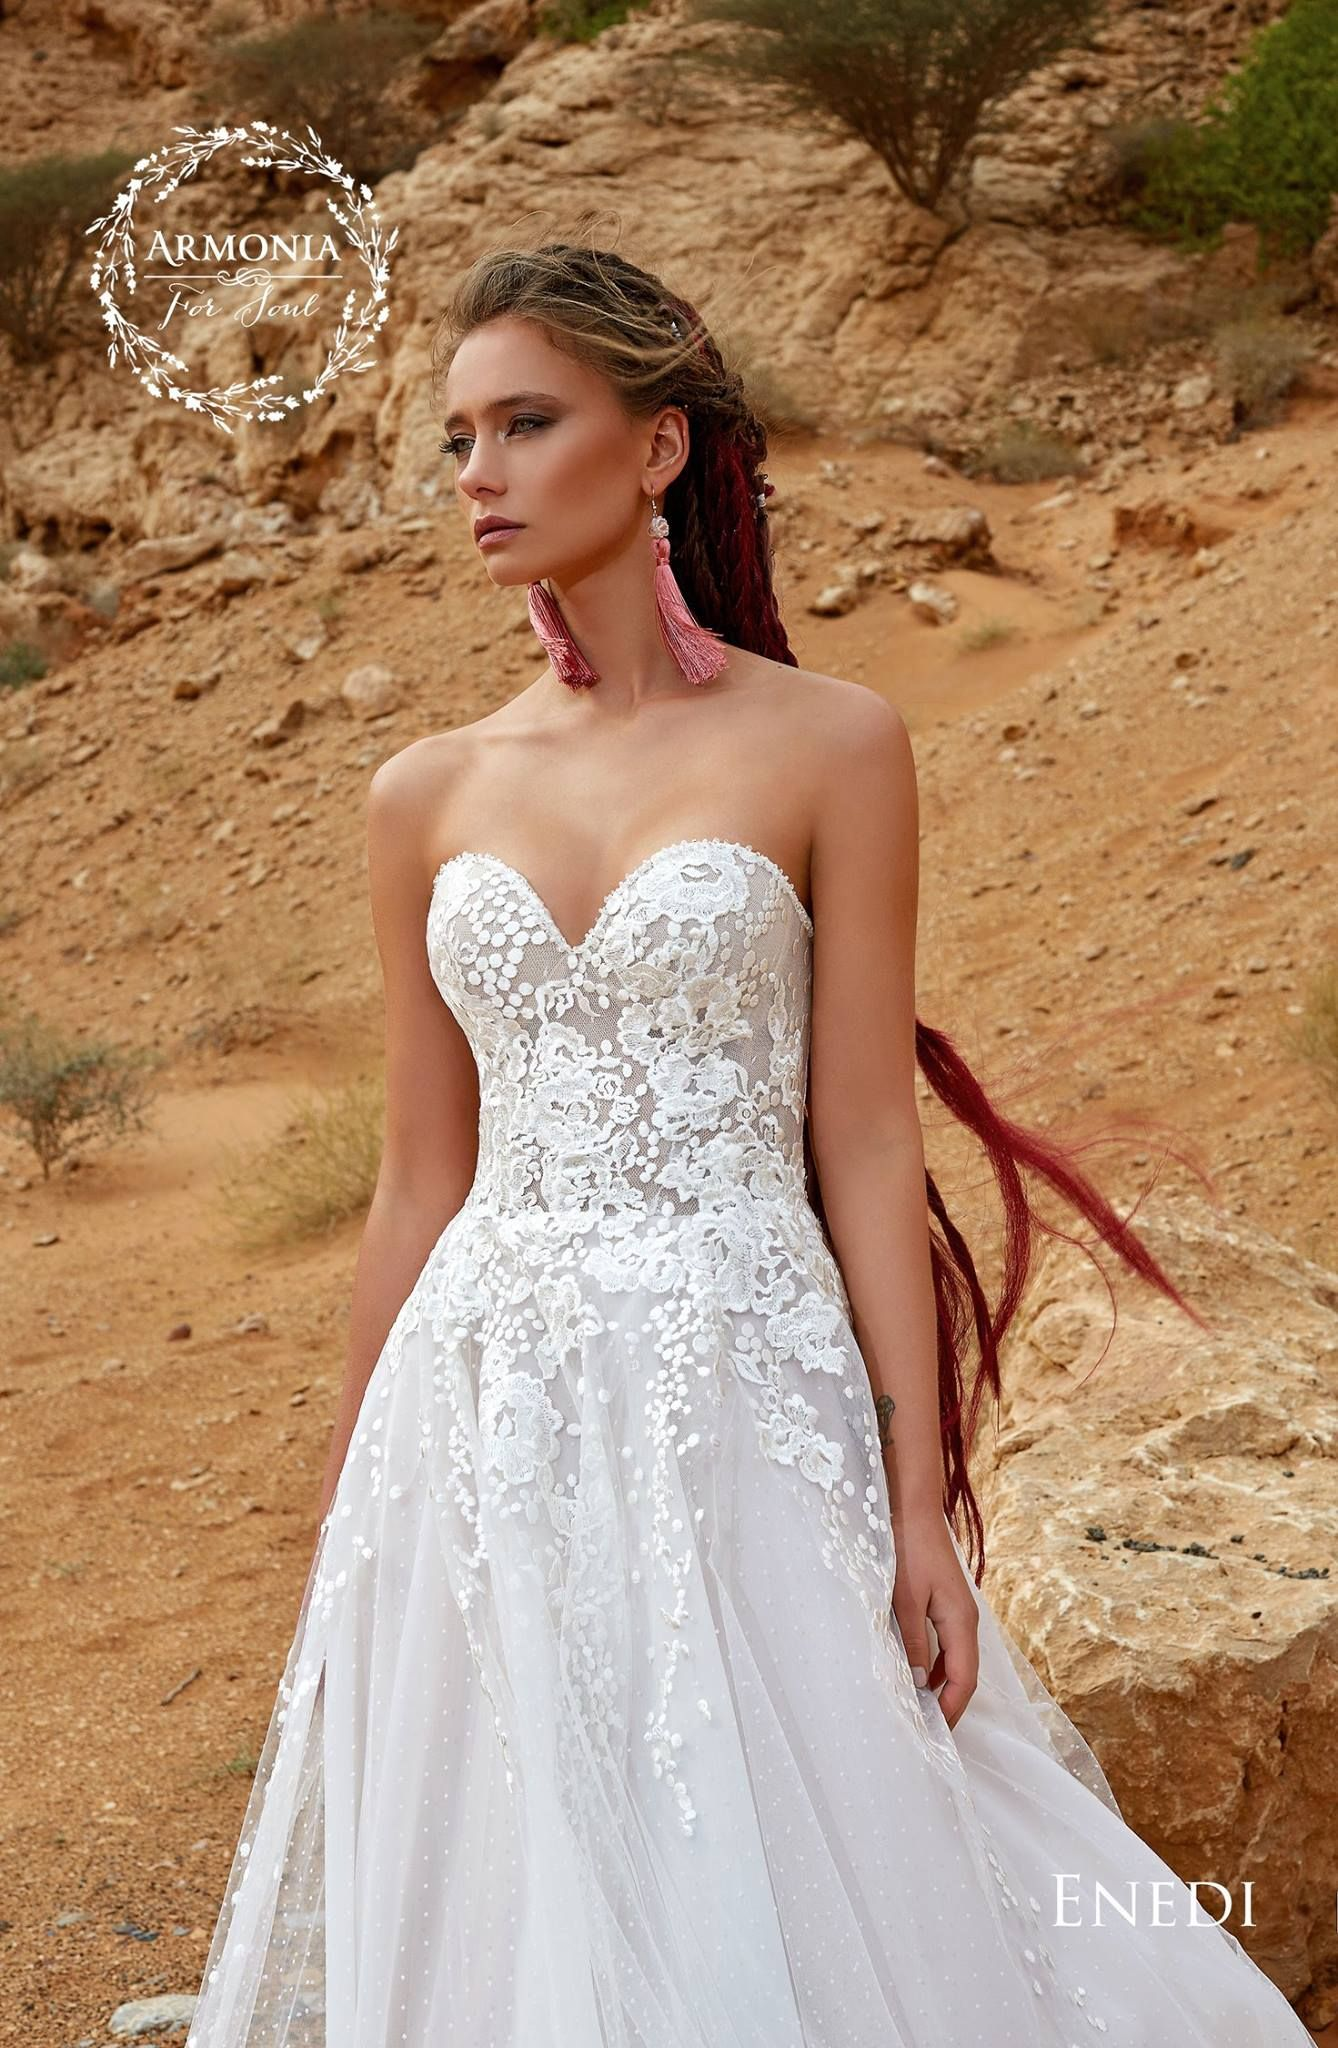 ENEDI Wedding Dress By ARMONIA Couture In Charme Gaby Bridal Gown Boutique Clearwater FL